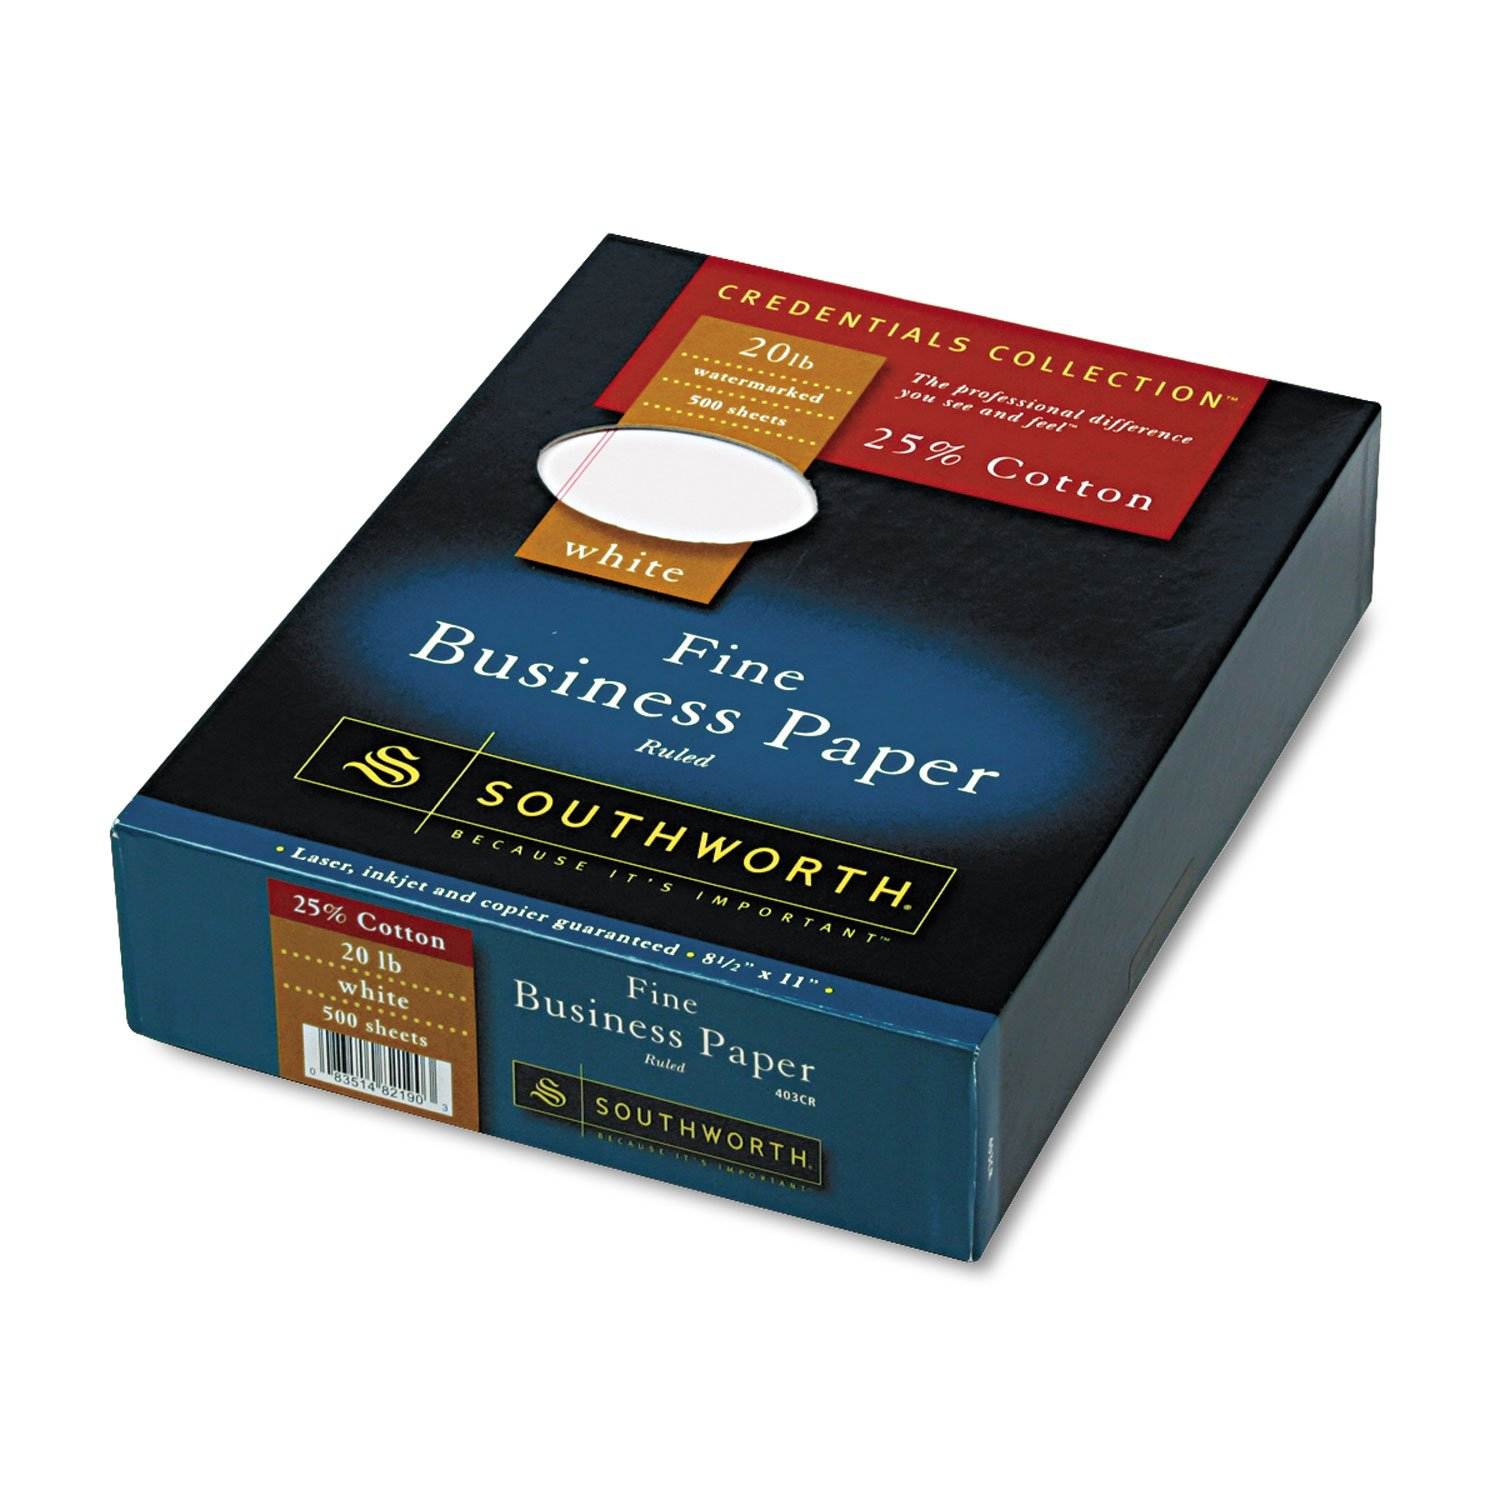 Southworth 403CR 25% Cotton Business Paper, 20 lbs, 8-1/2 x 11, White w/Red Rules, 500/Box